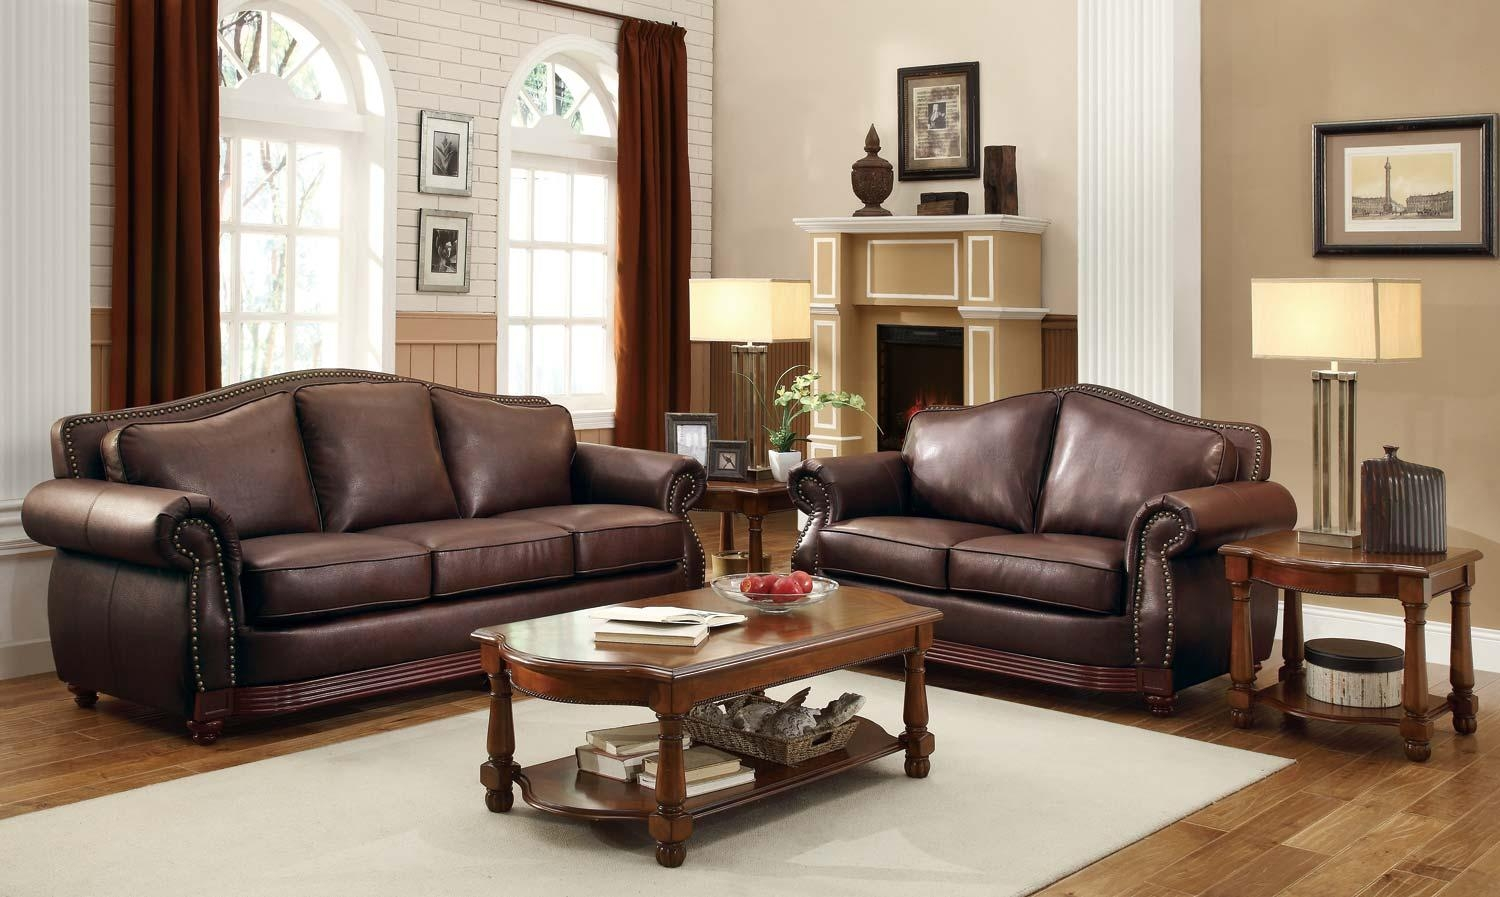 Homelegance Midwood Bonded Leather Sofa Collection – Dark Brown Intended For Bonded Leather Sofas (View 10 of 20)